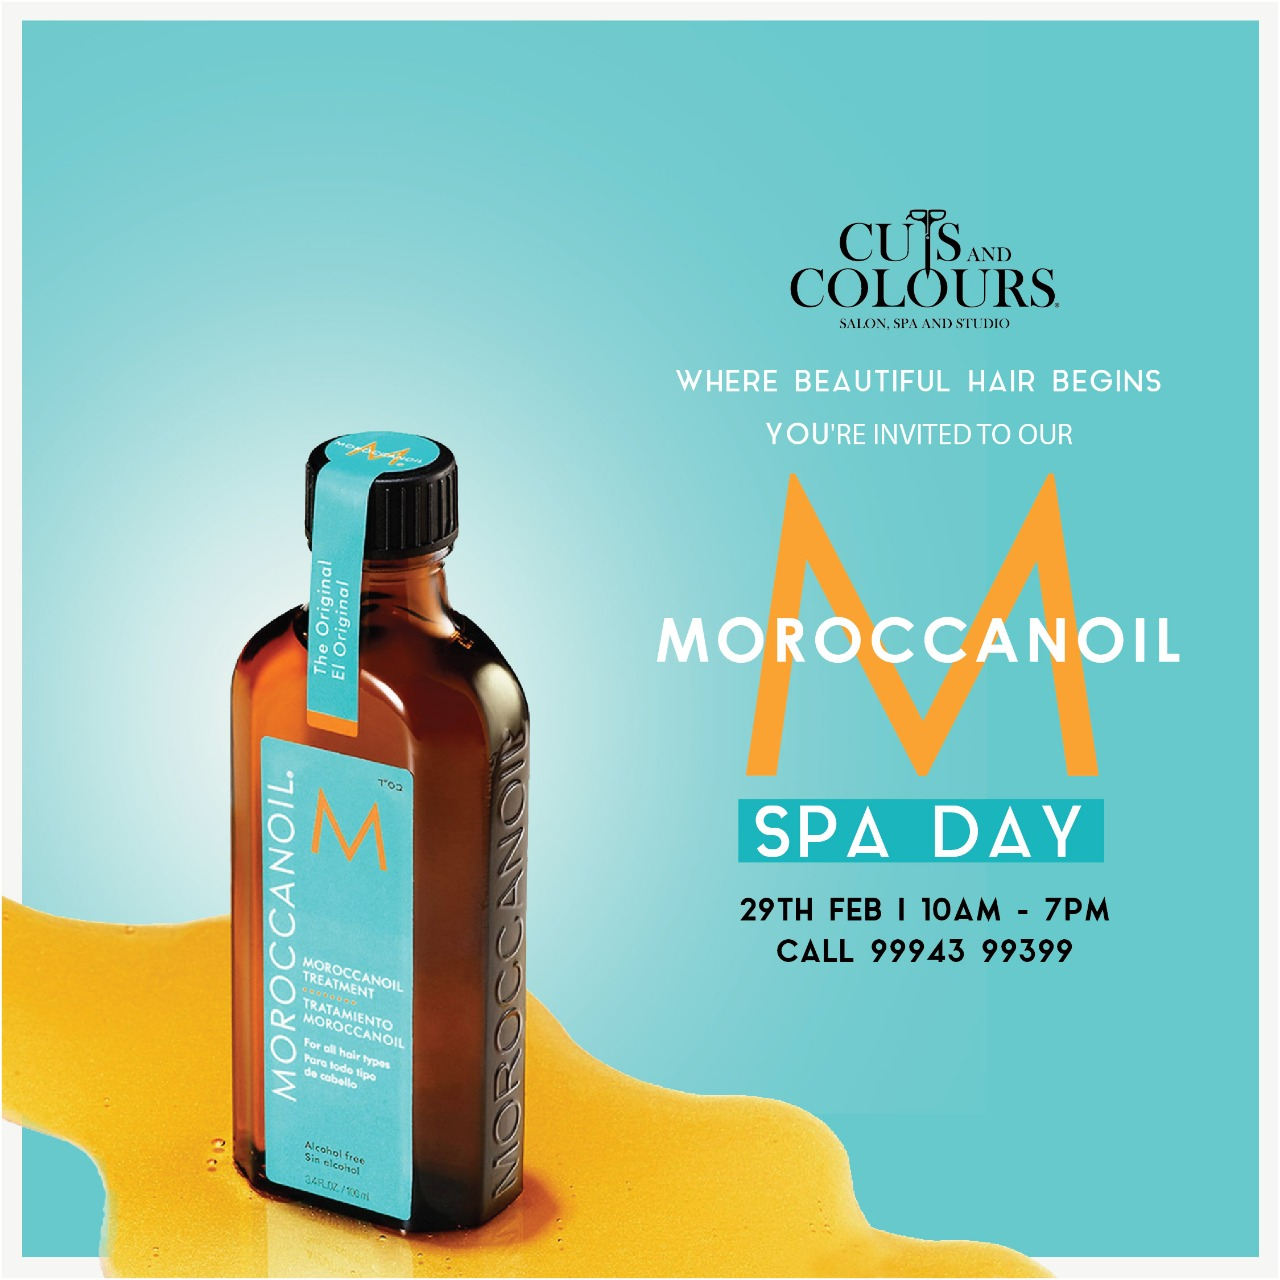 MorocconOil Hair Spa at Cuts and Colors, Royapettah